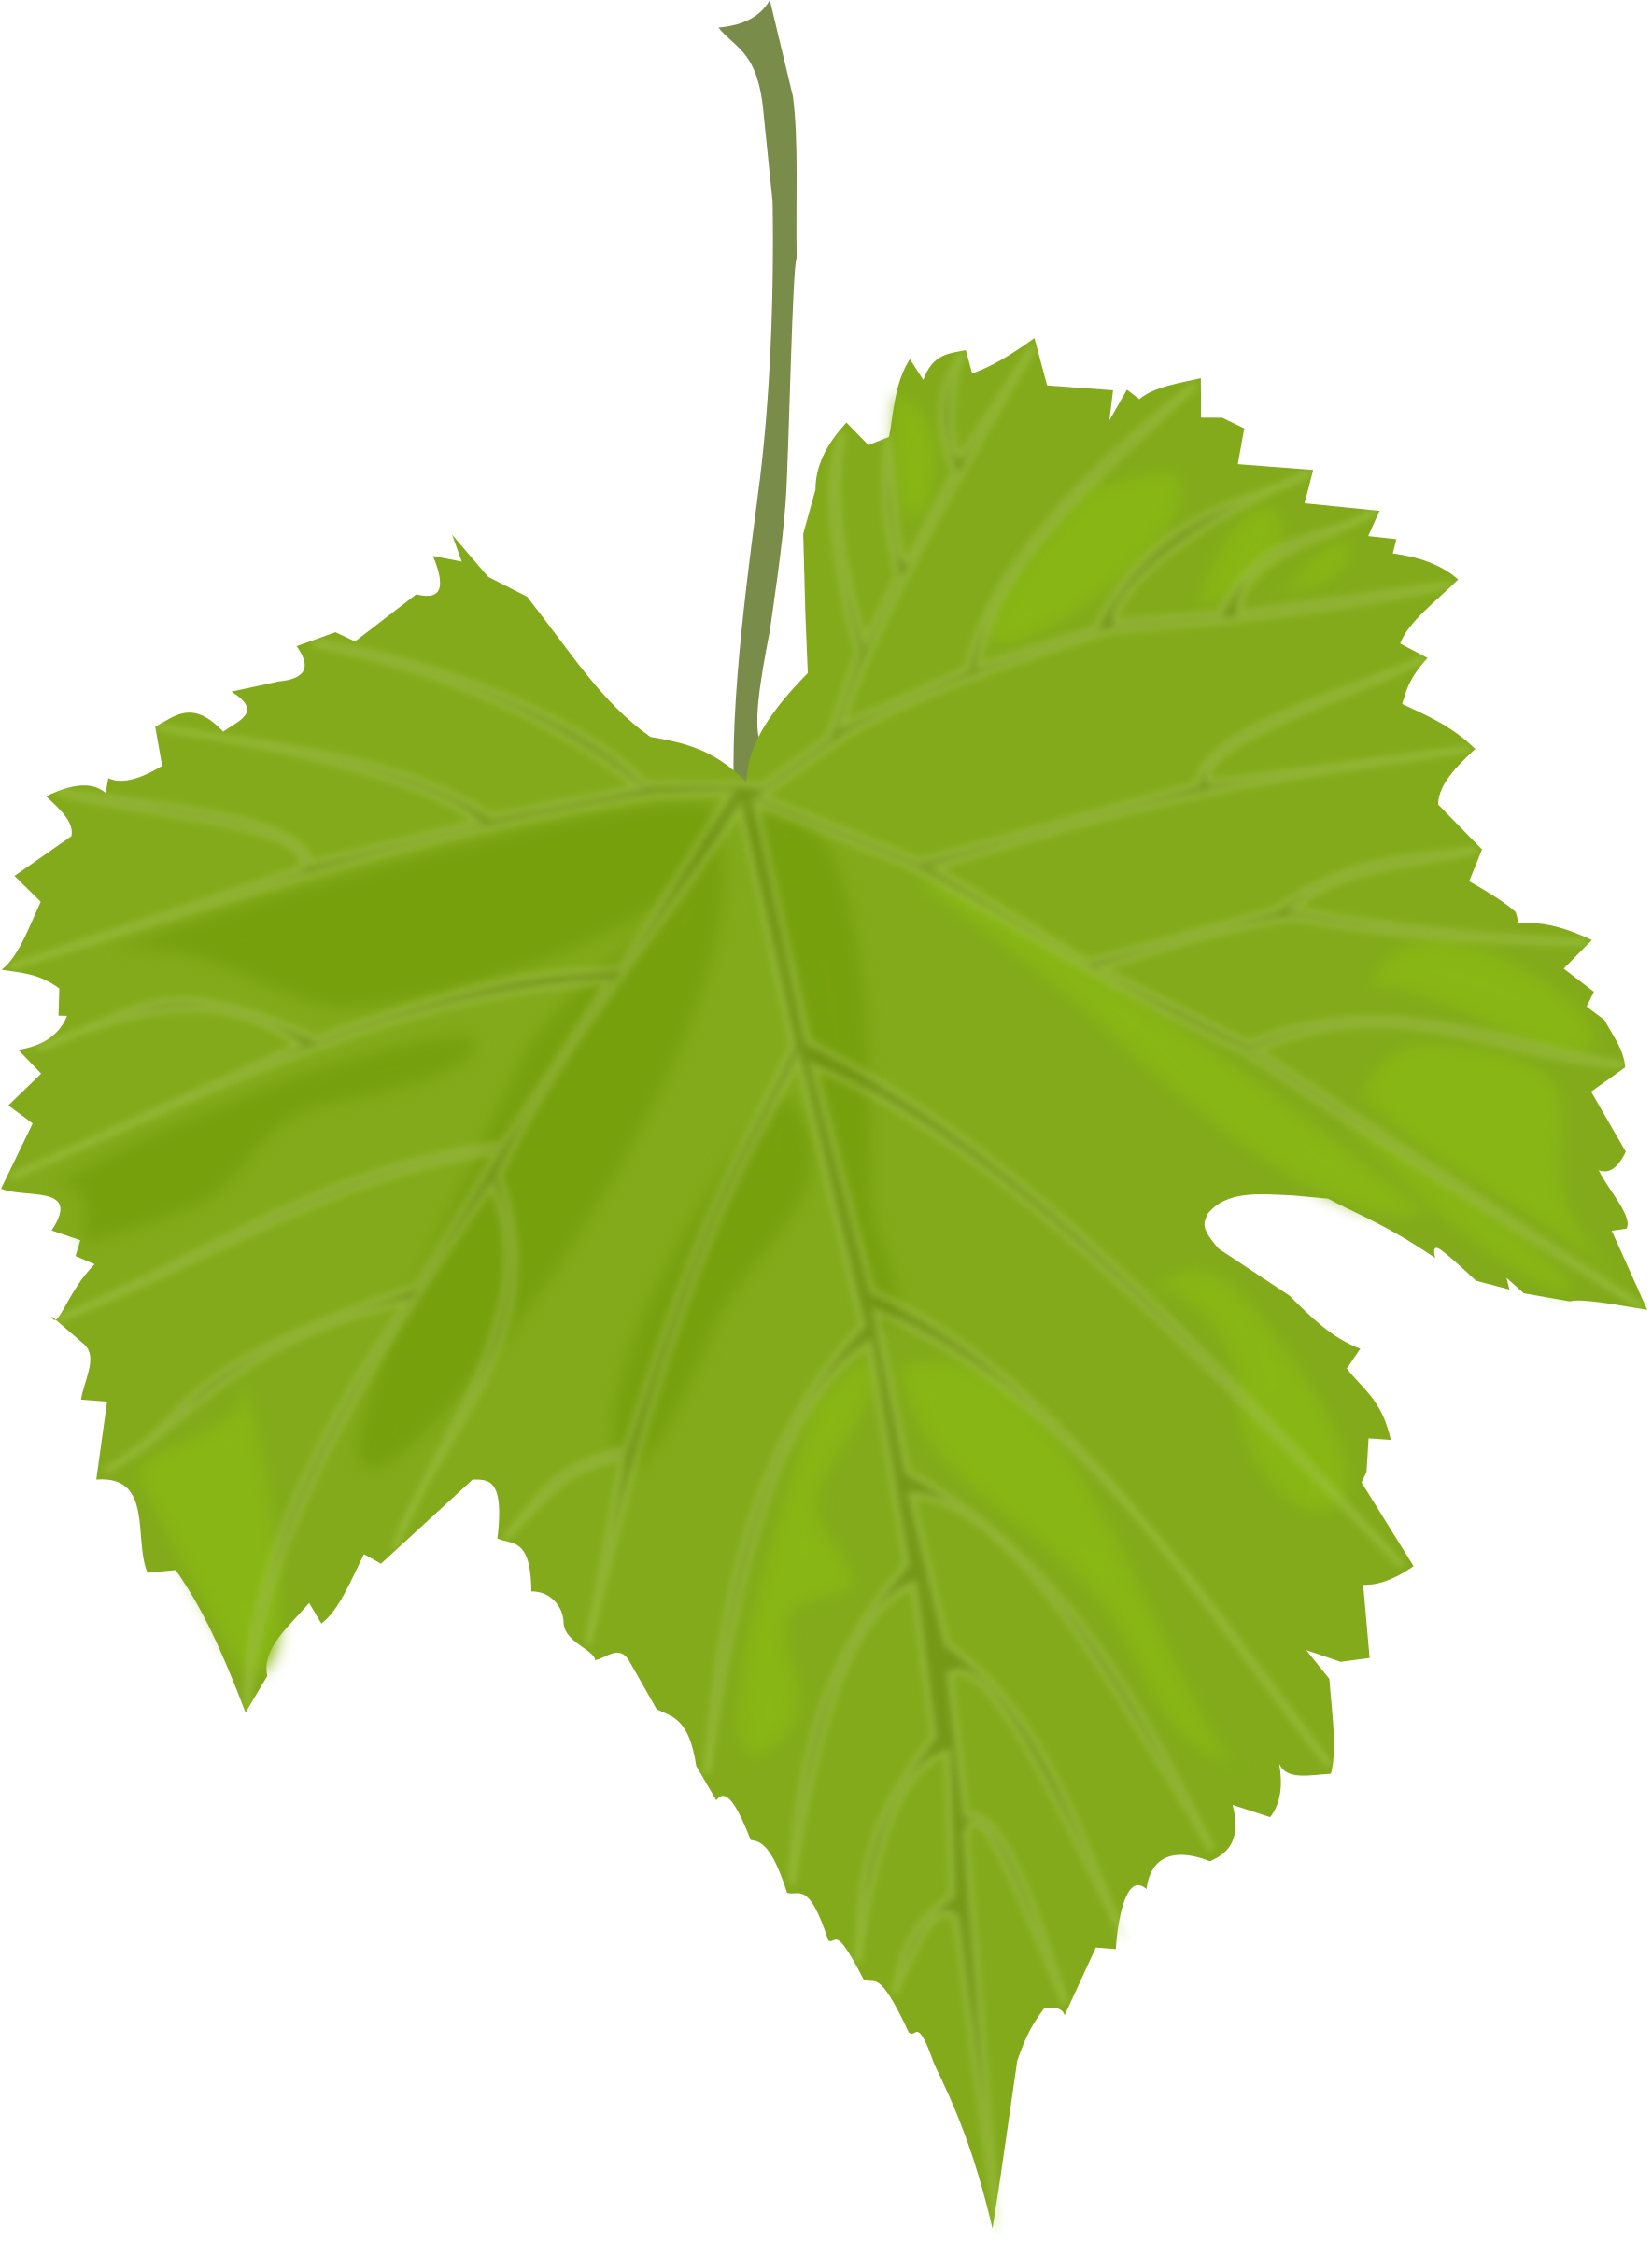 Grape Leaf by mi_brami